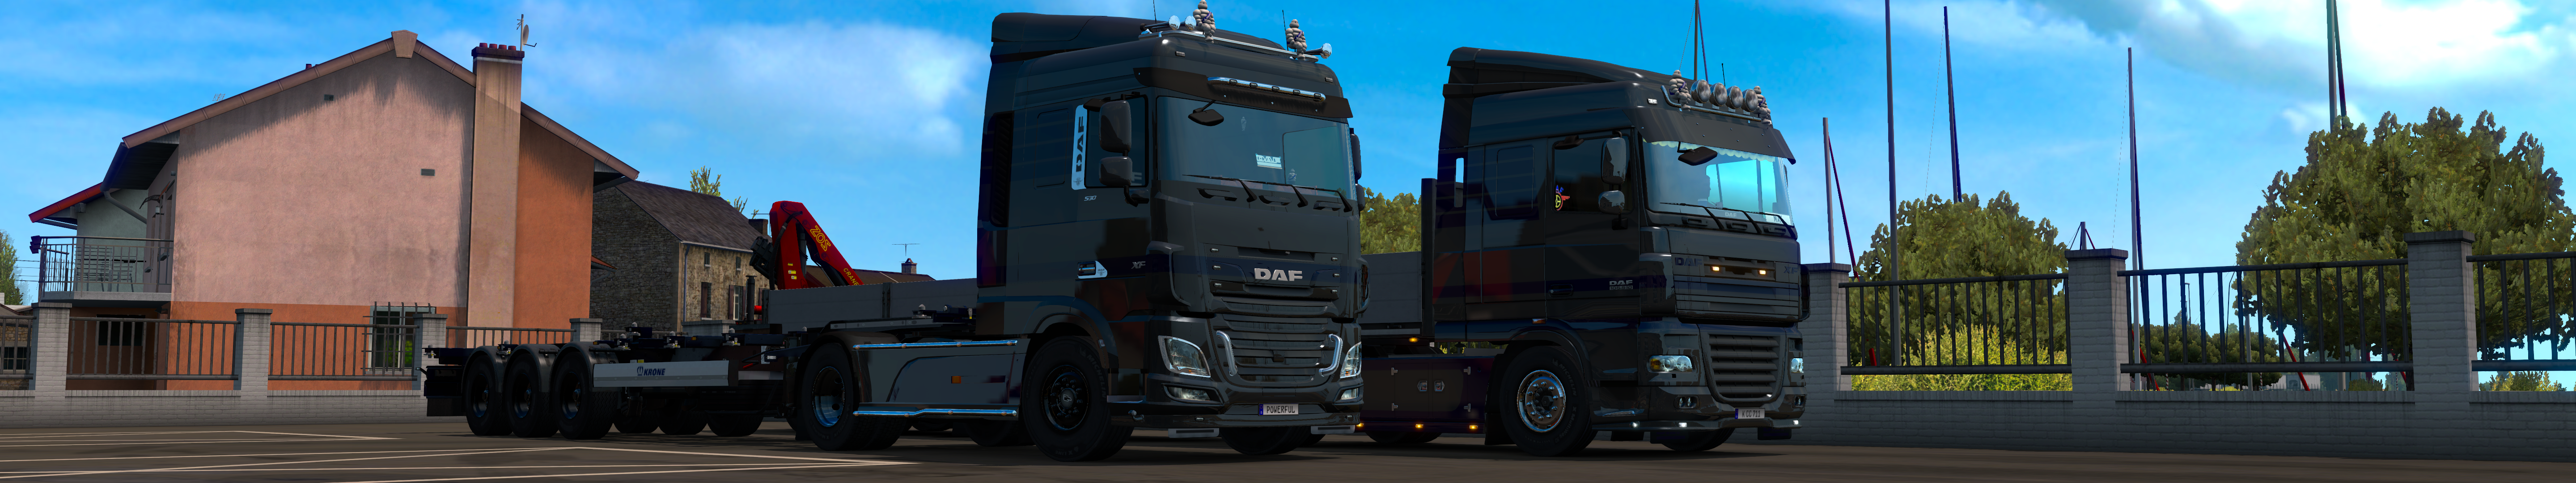 ets2_20200629_203725_00.png